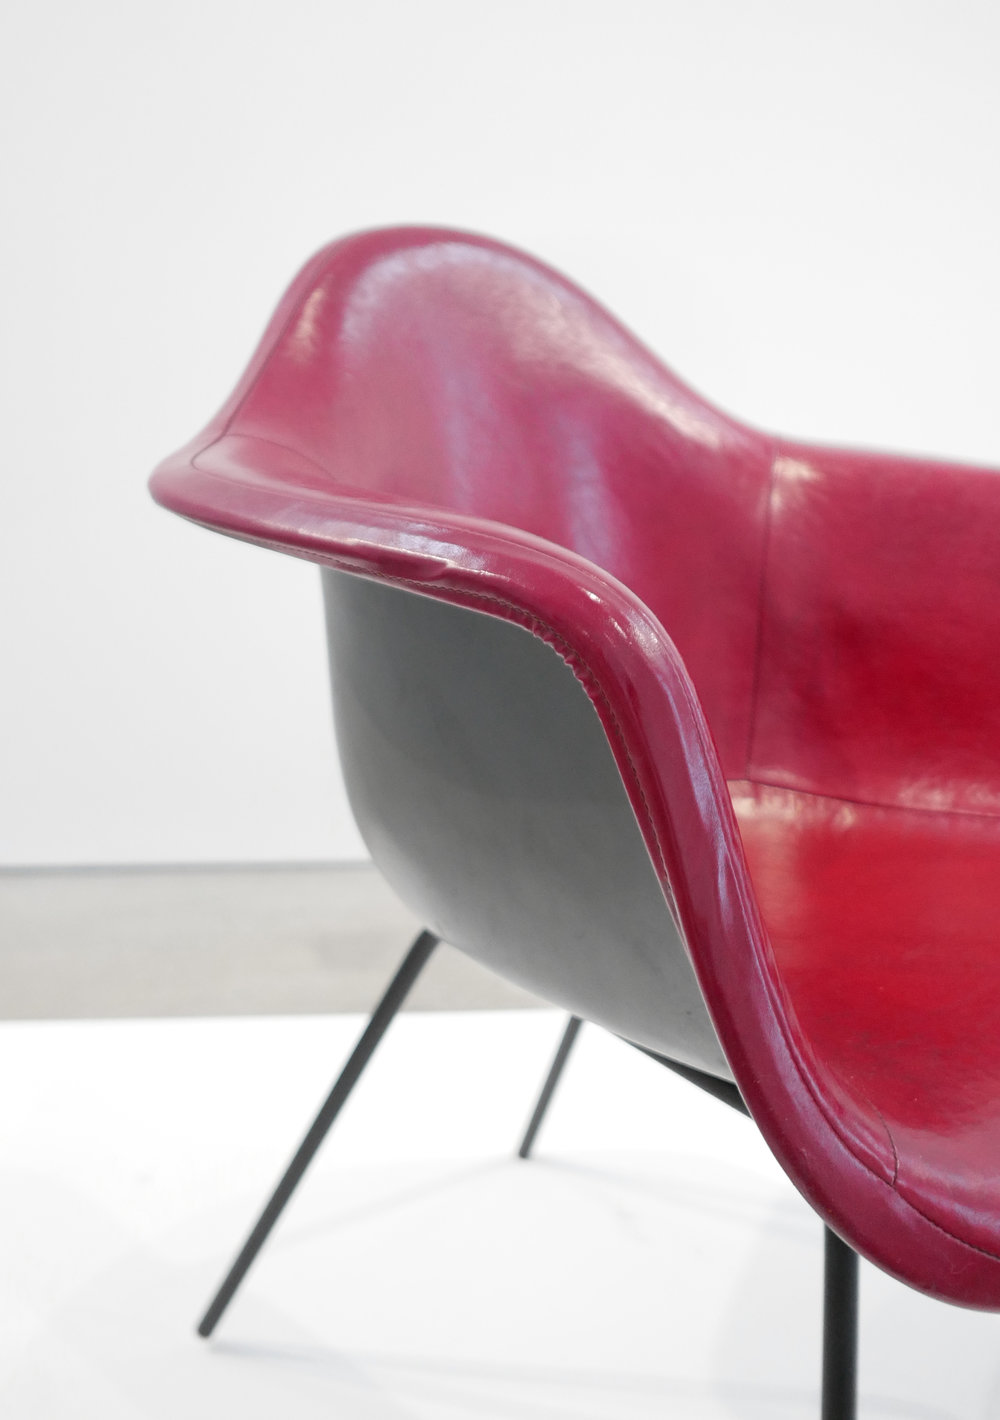 6. Ray and Charles Eames, 'DAX' Chairs, 1954, molded and lacquered fiberglass, vinyl, enameled steel, plastic, 31 x 25.5 x 25 inches.jpg